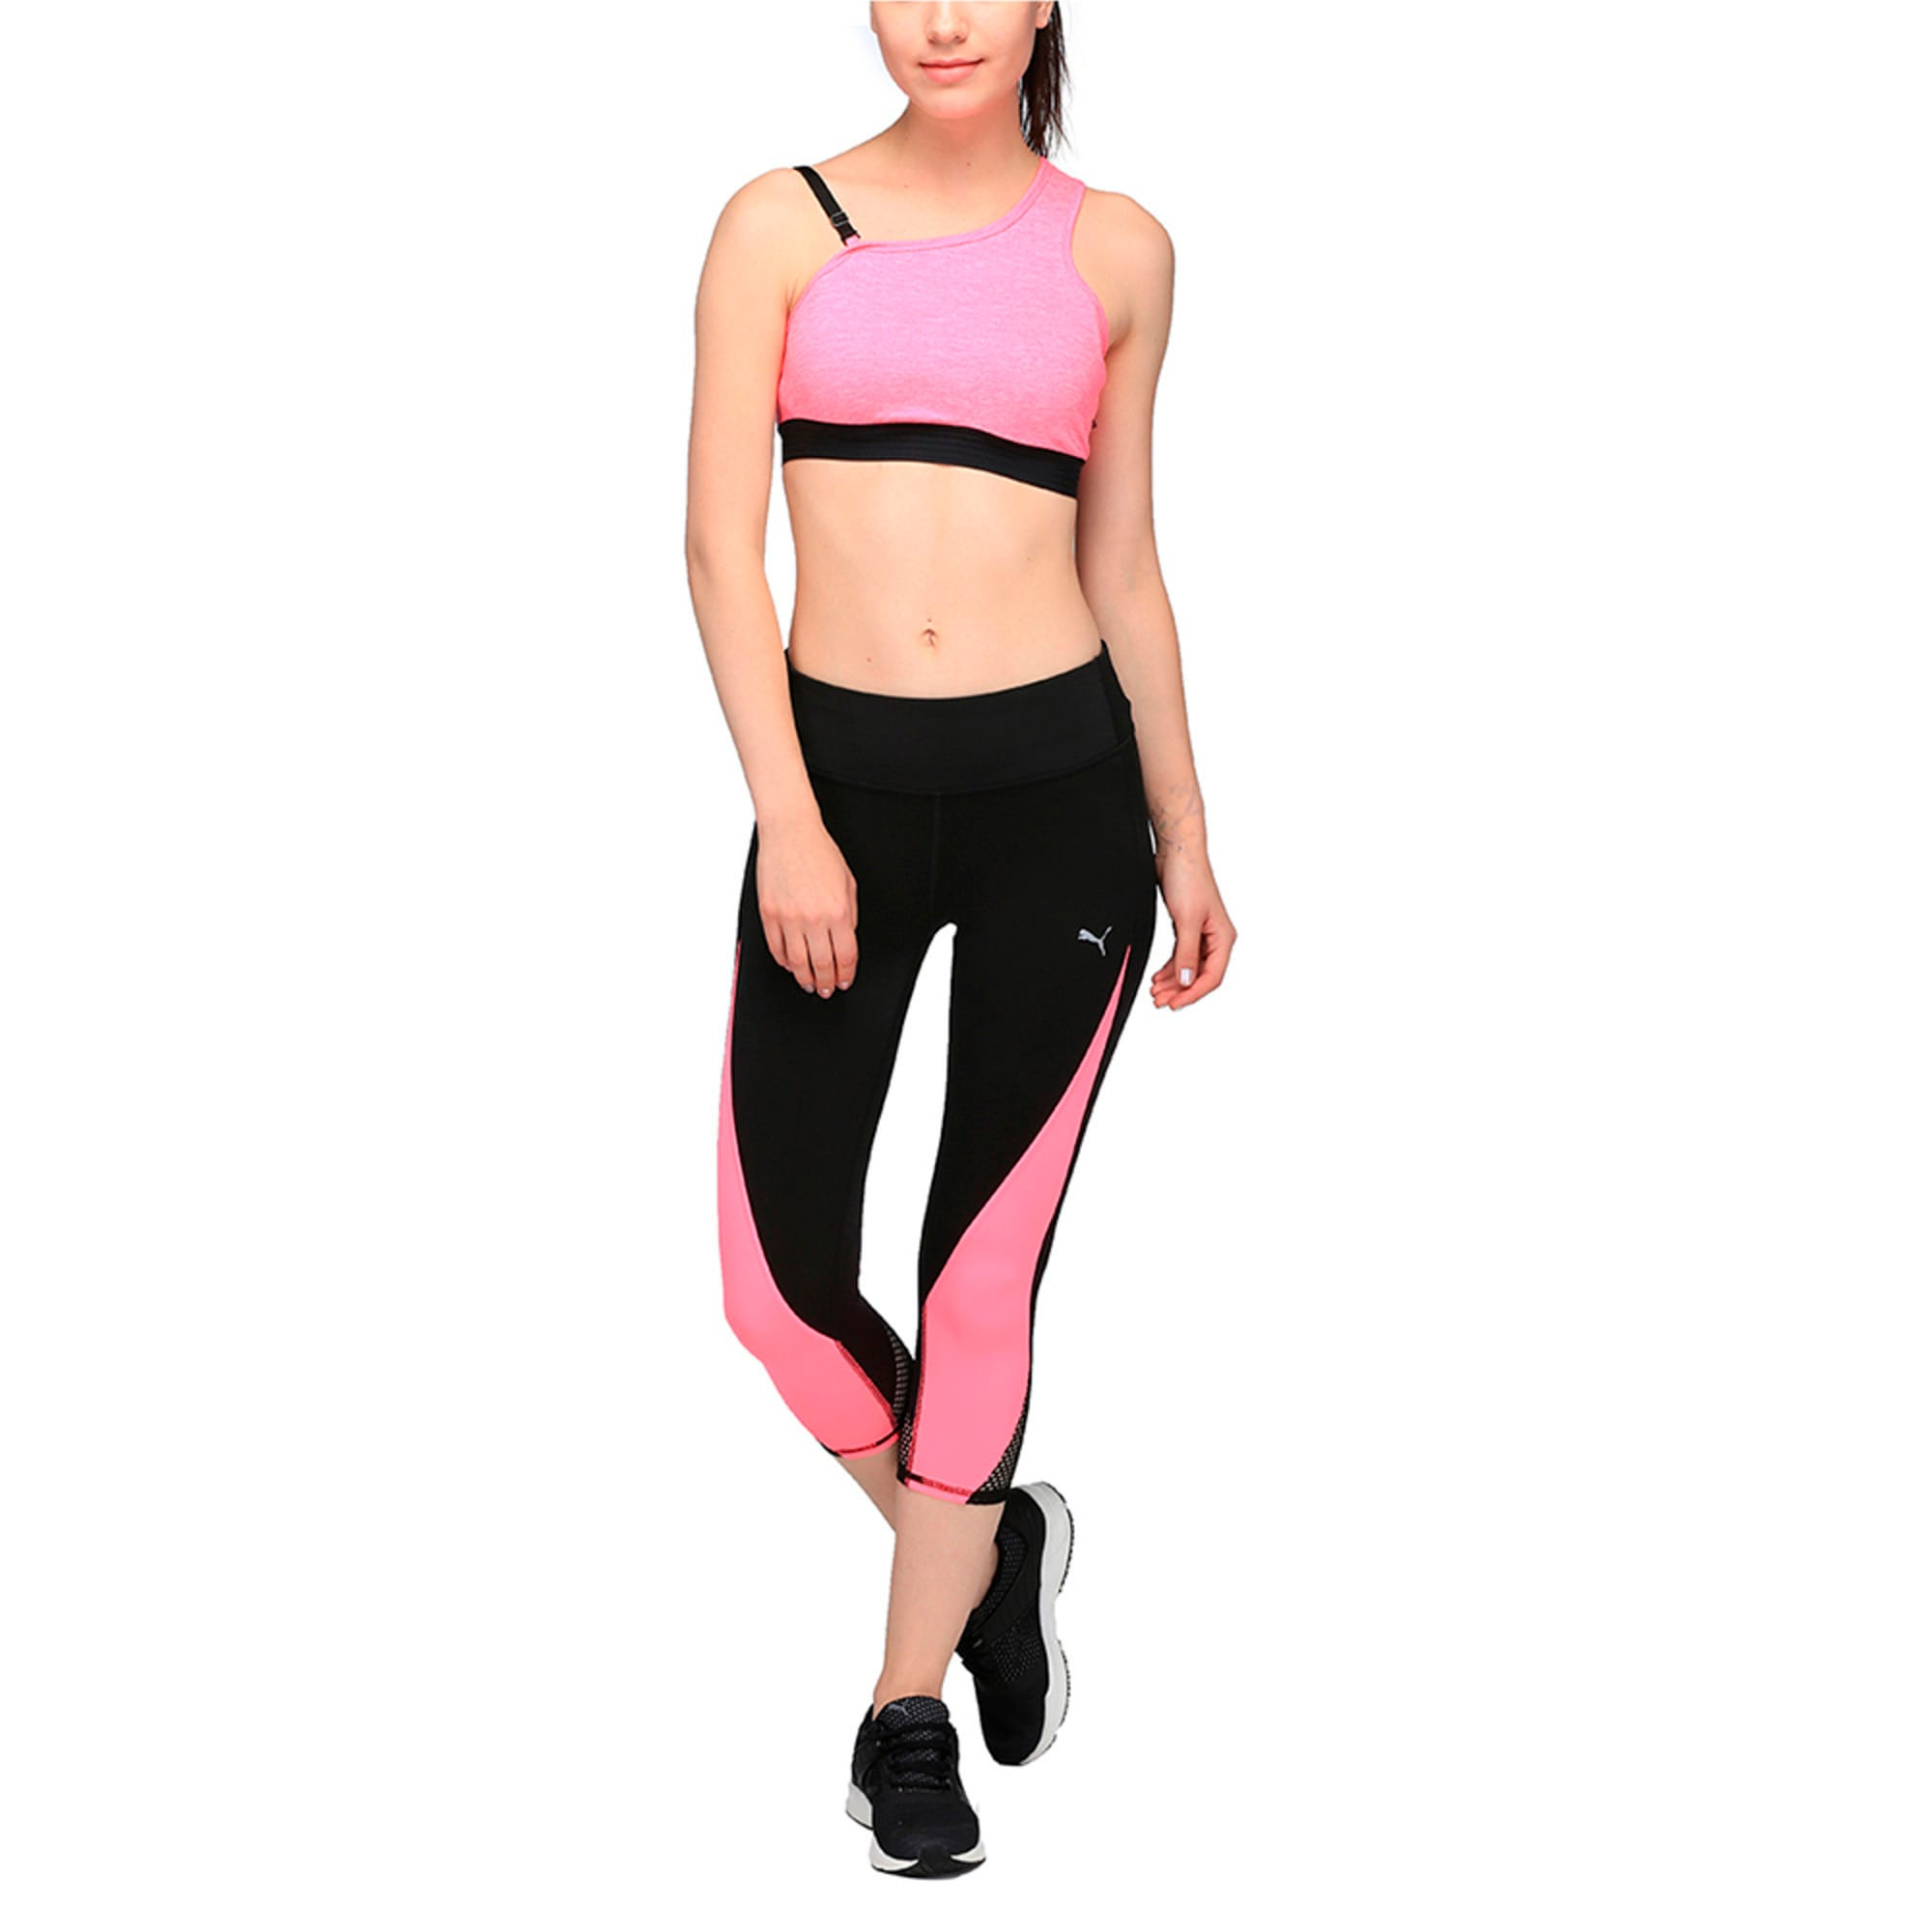 Thumbnail 4 of Active Training Women's Explosive 3/4 Tights, Puma Black-KNOCKOUT PINK, medium-IND